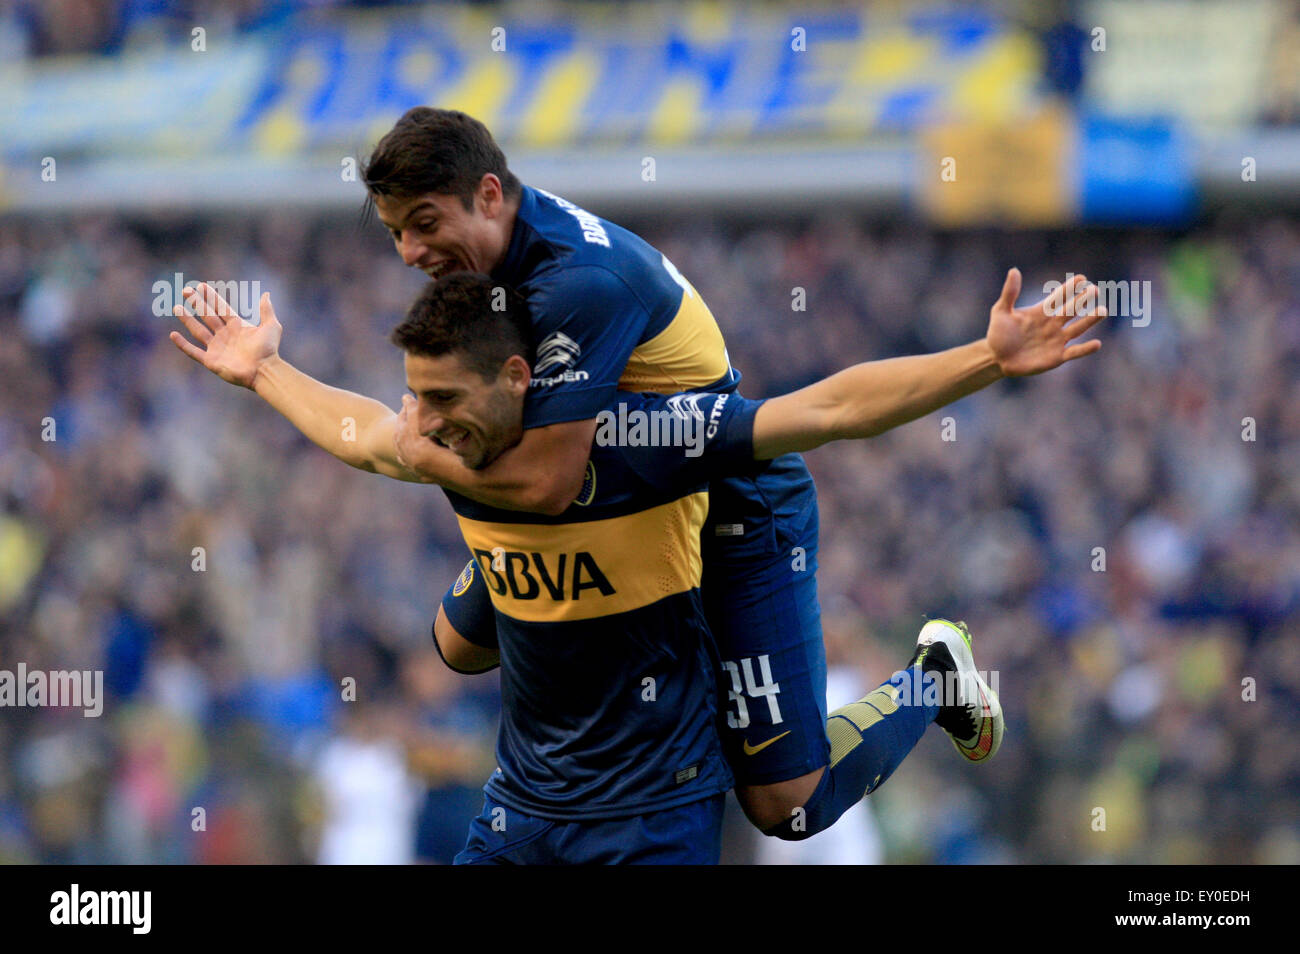 Boca Juniors: Boca Juniors Stock Photos & Boca Juniors Stock Images